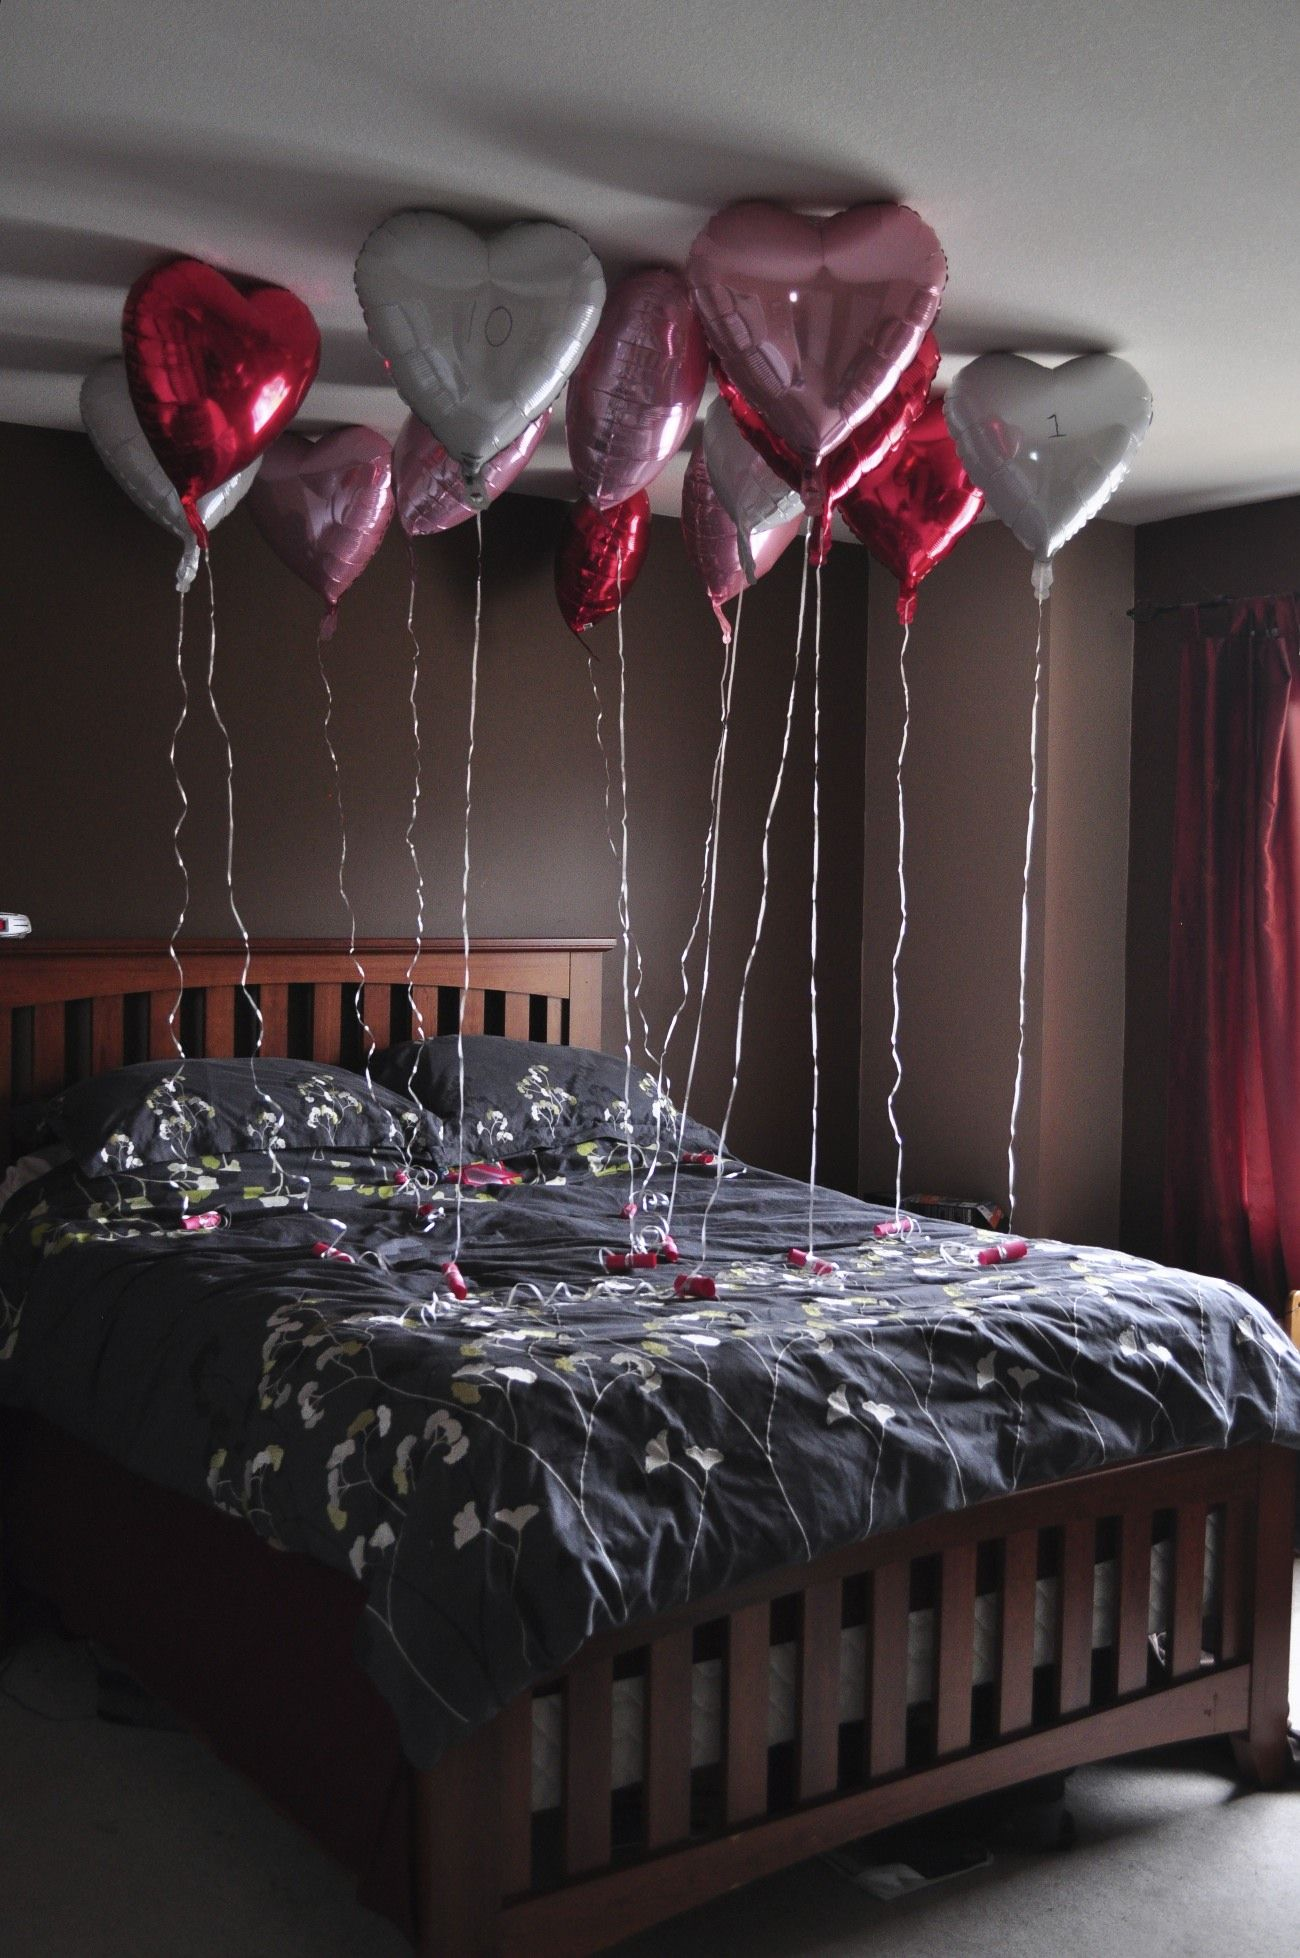 Anniversary surprise one balloon for each year of marriage and  little memory poem also adam evela adamevela on pinterest rh